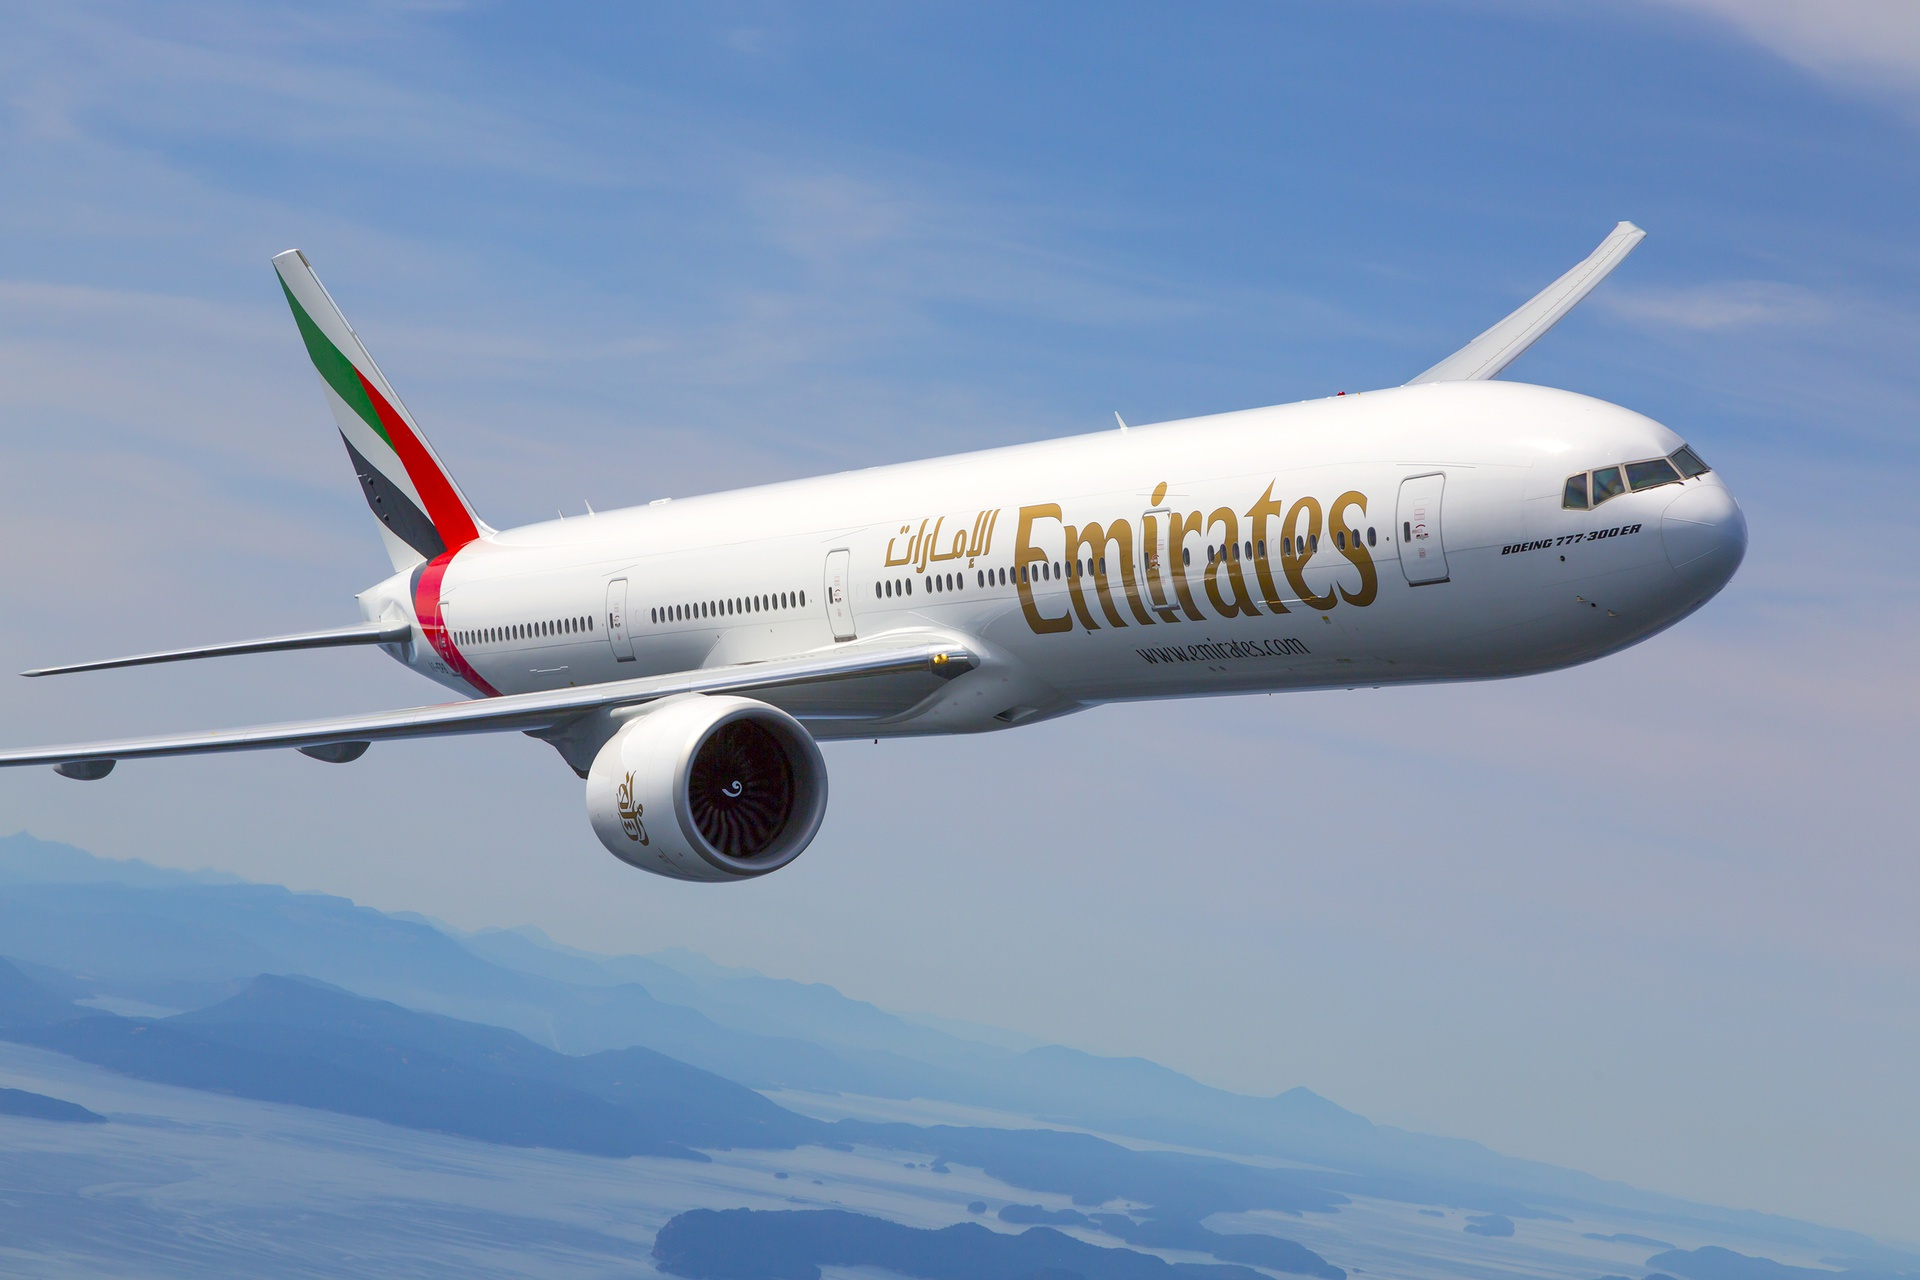 Nigeria's ban on Emirates Airlines takes effect